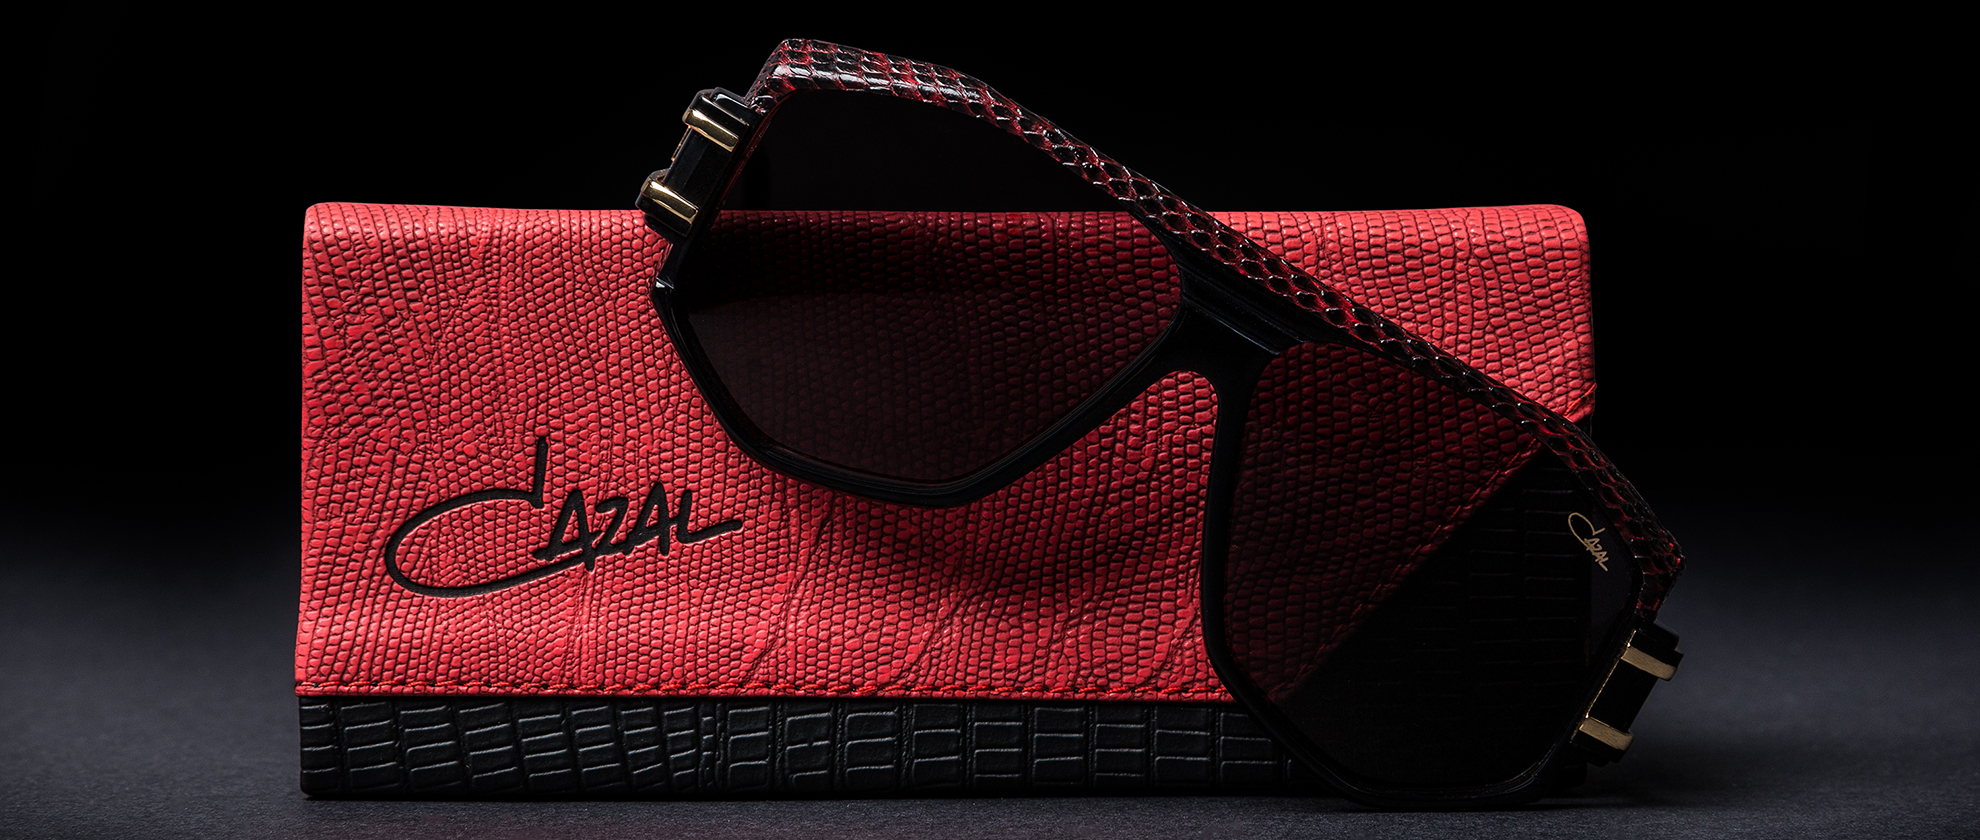 Cazal's Cutting Edge New Sunglasses Collection Has Arrived